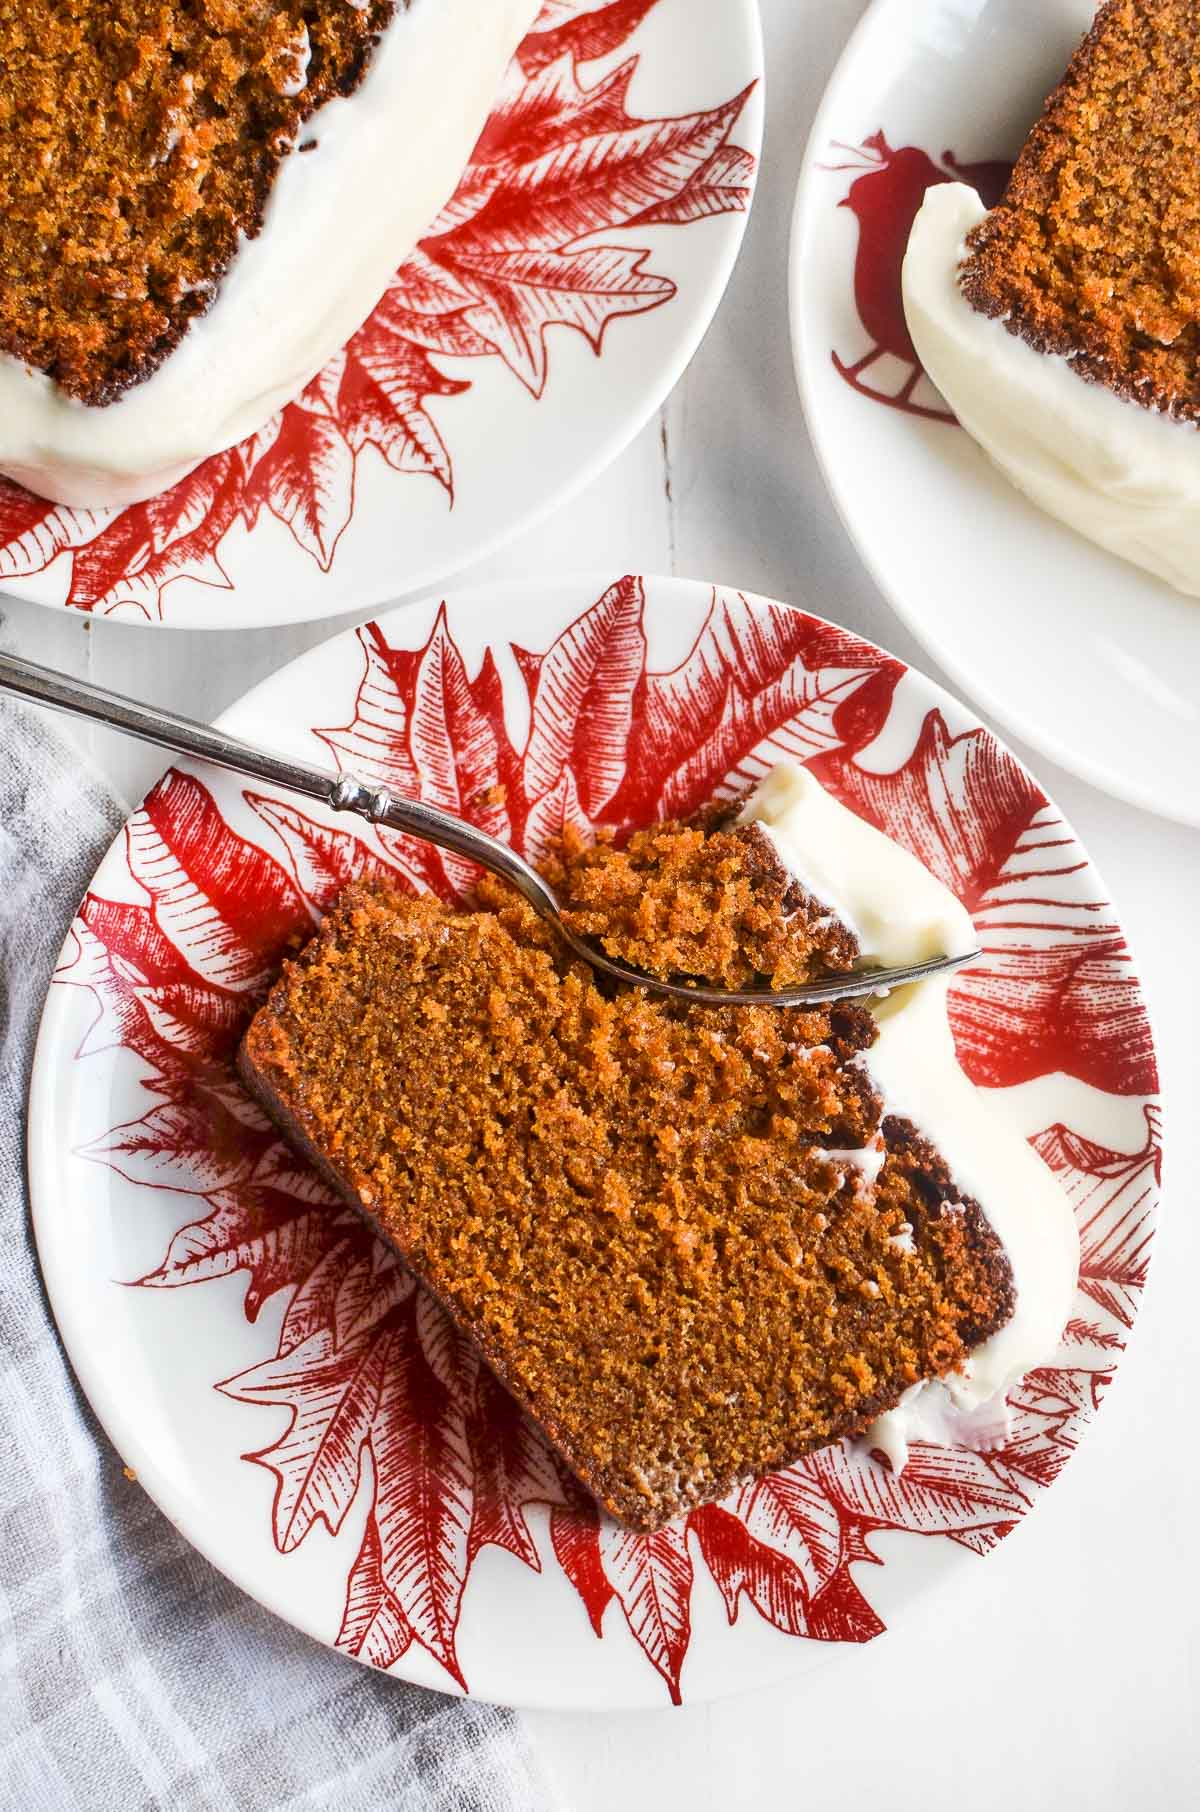 Slices of gingerbread loaf cake on red patterned dessert plates on a white surface.